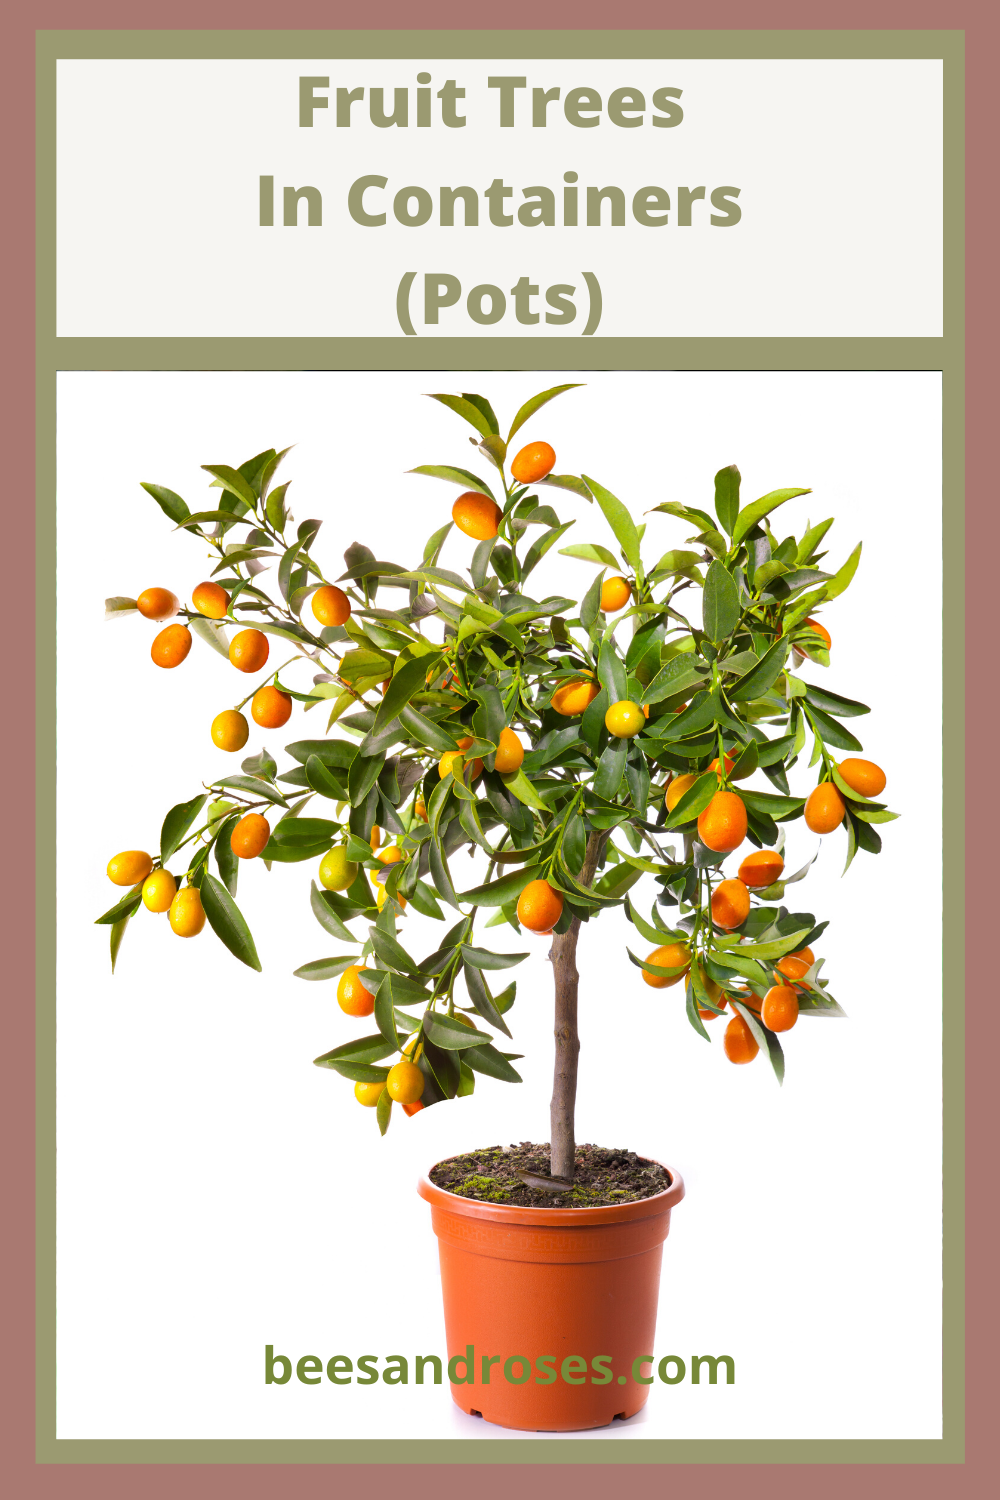 When growing fruit trees in containers, the type of pot you use can make or break your success. Learn about the pots that are best and also what type of soil will provide the best nutrition for the tree. #beesandrosesblog #fruitgardening #fruittreesincontainers #containergardening